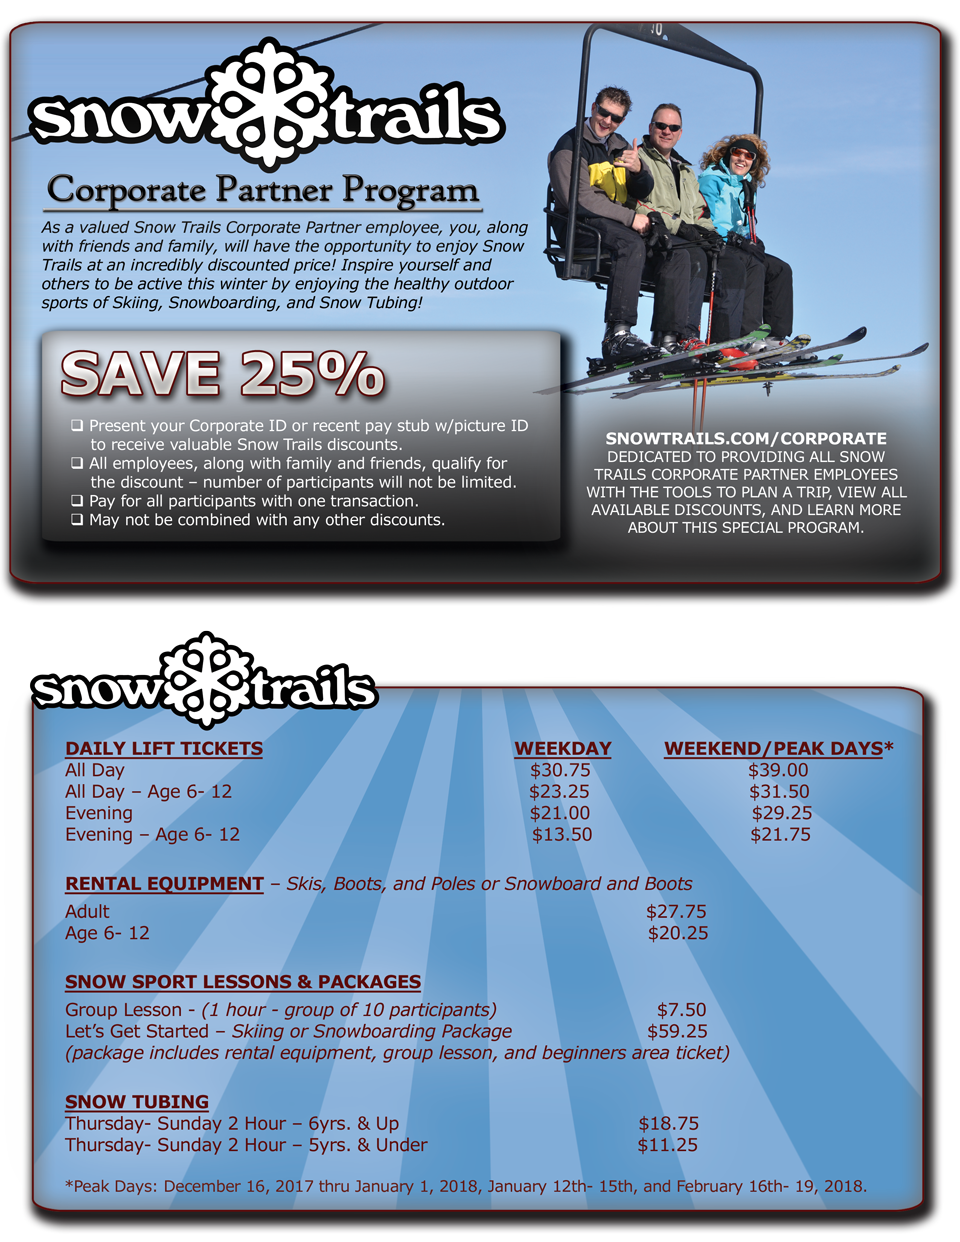 Snow Trails Corporate Partner Program